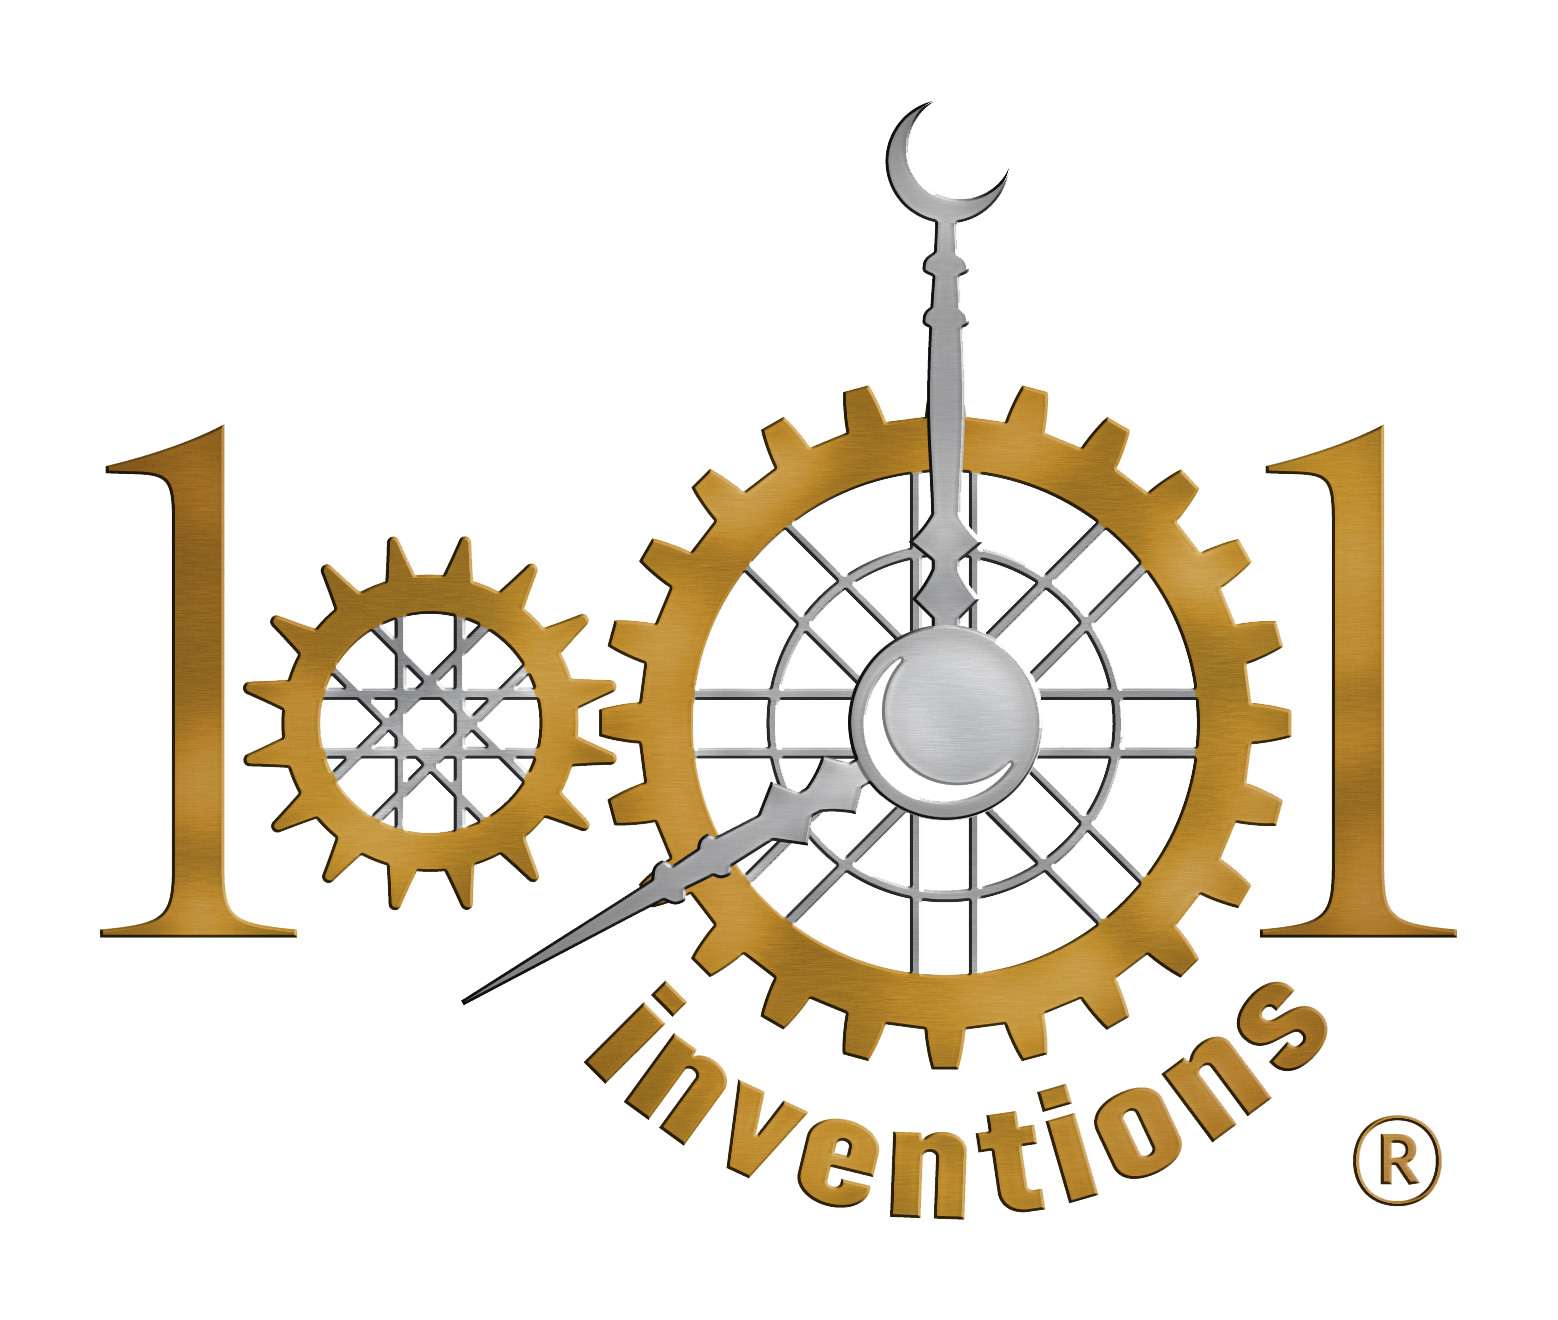 [Size 728KB]. 1001 Inventions official logo